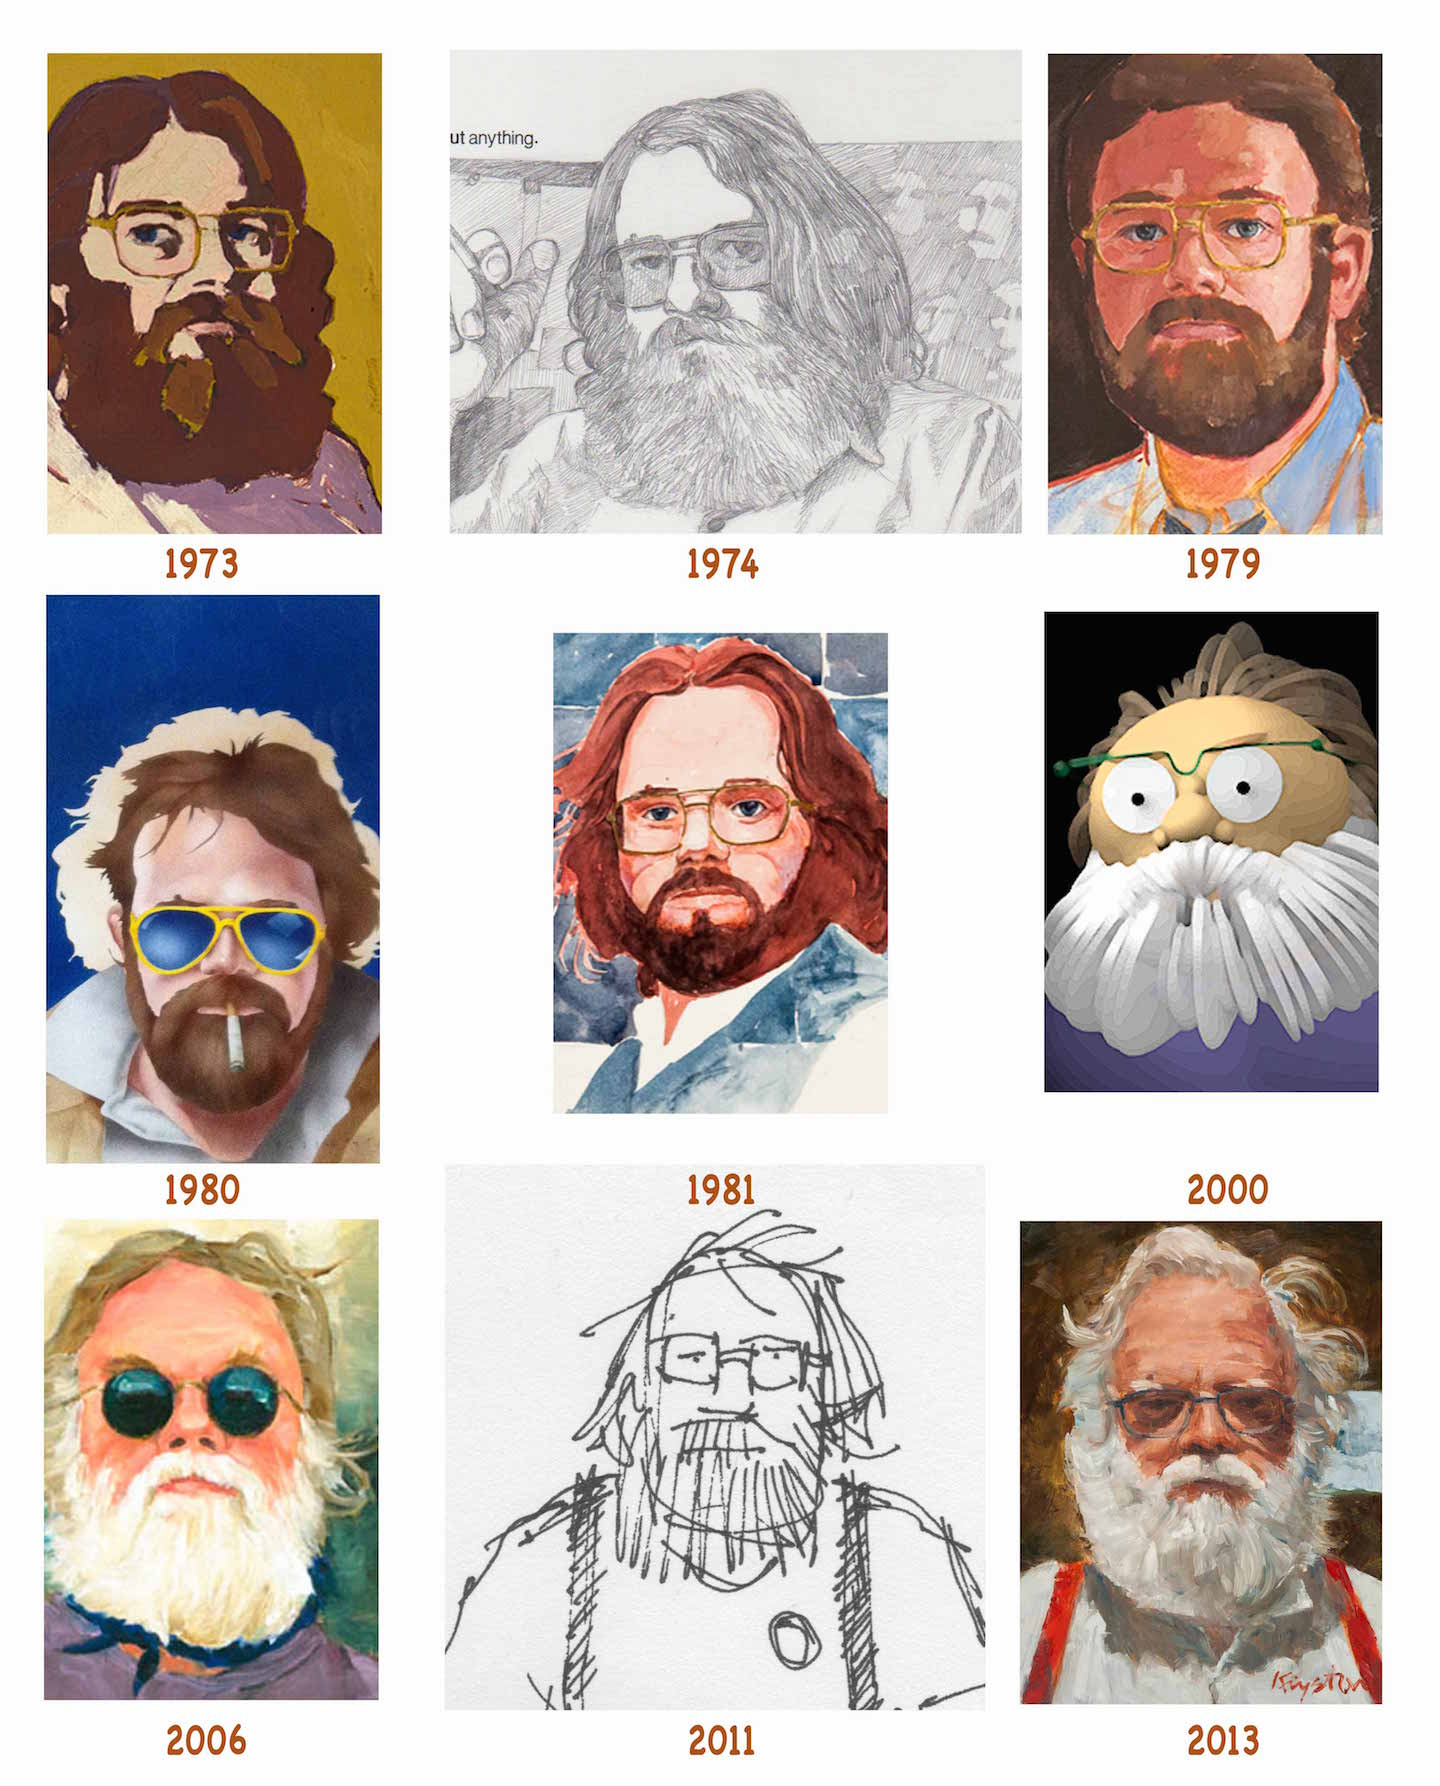 These self portraits were done in pencil, acrylics, oils, airbrush, watercolor and pen and ink.